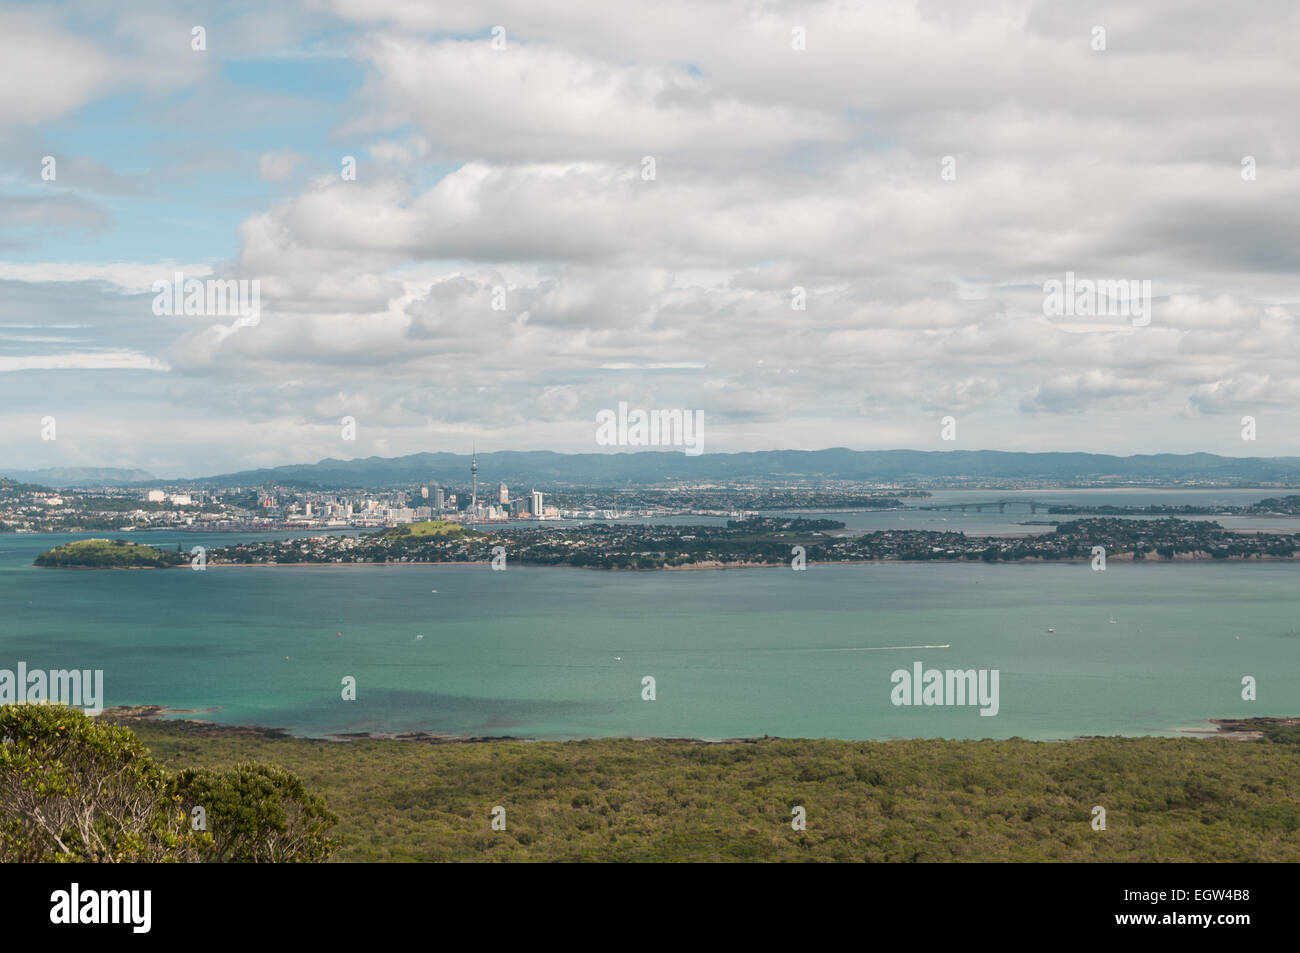 Auckland and Devonport, North Island, New Zealand. - Stock Image